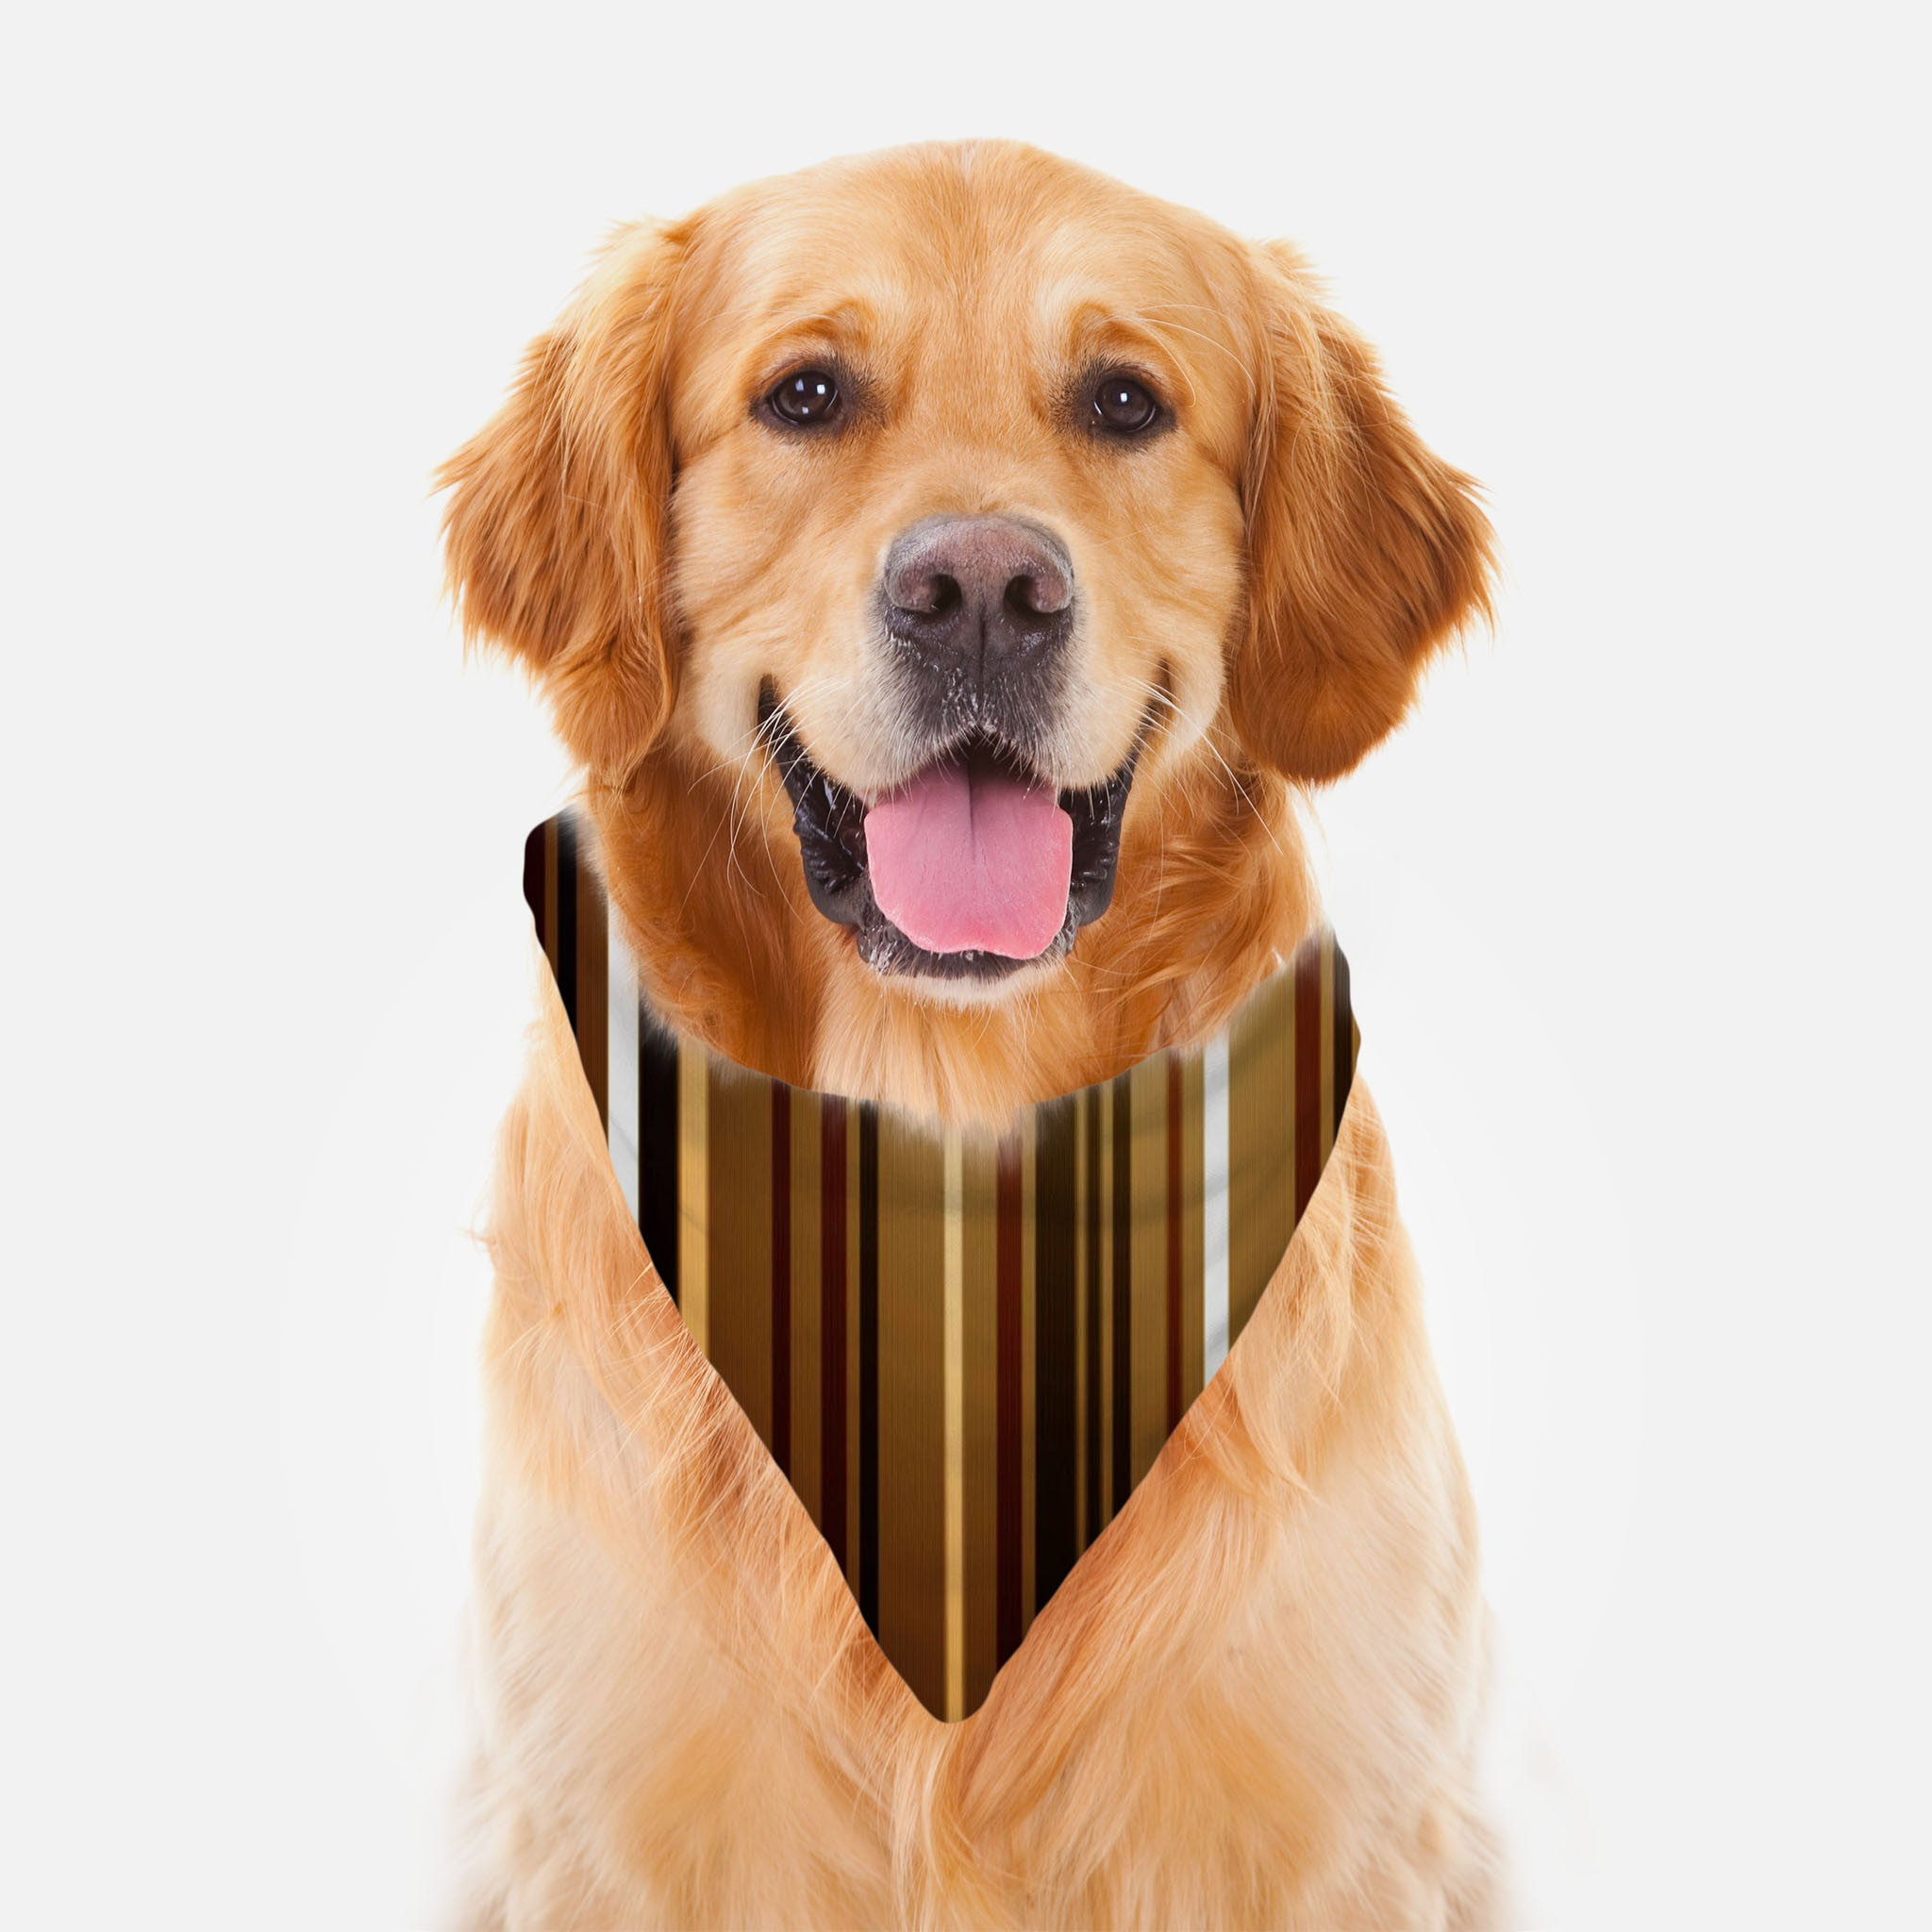 Stripe Me Brown Ruff Riders Pet Bandana by JoJo (1170013-RR-B)